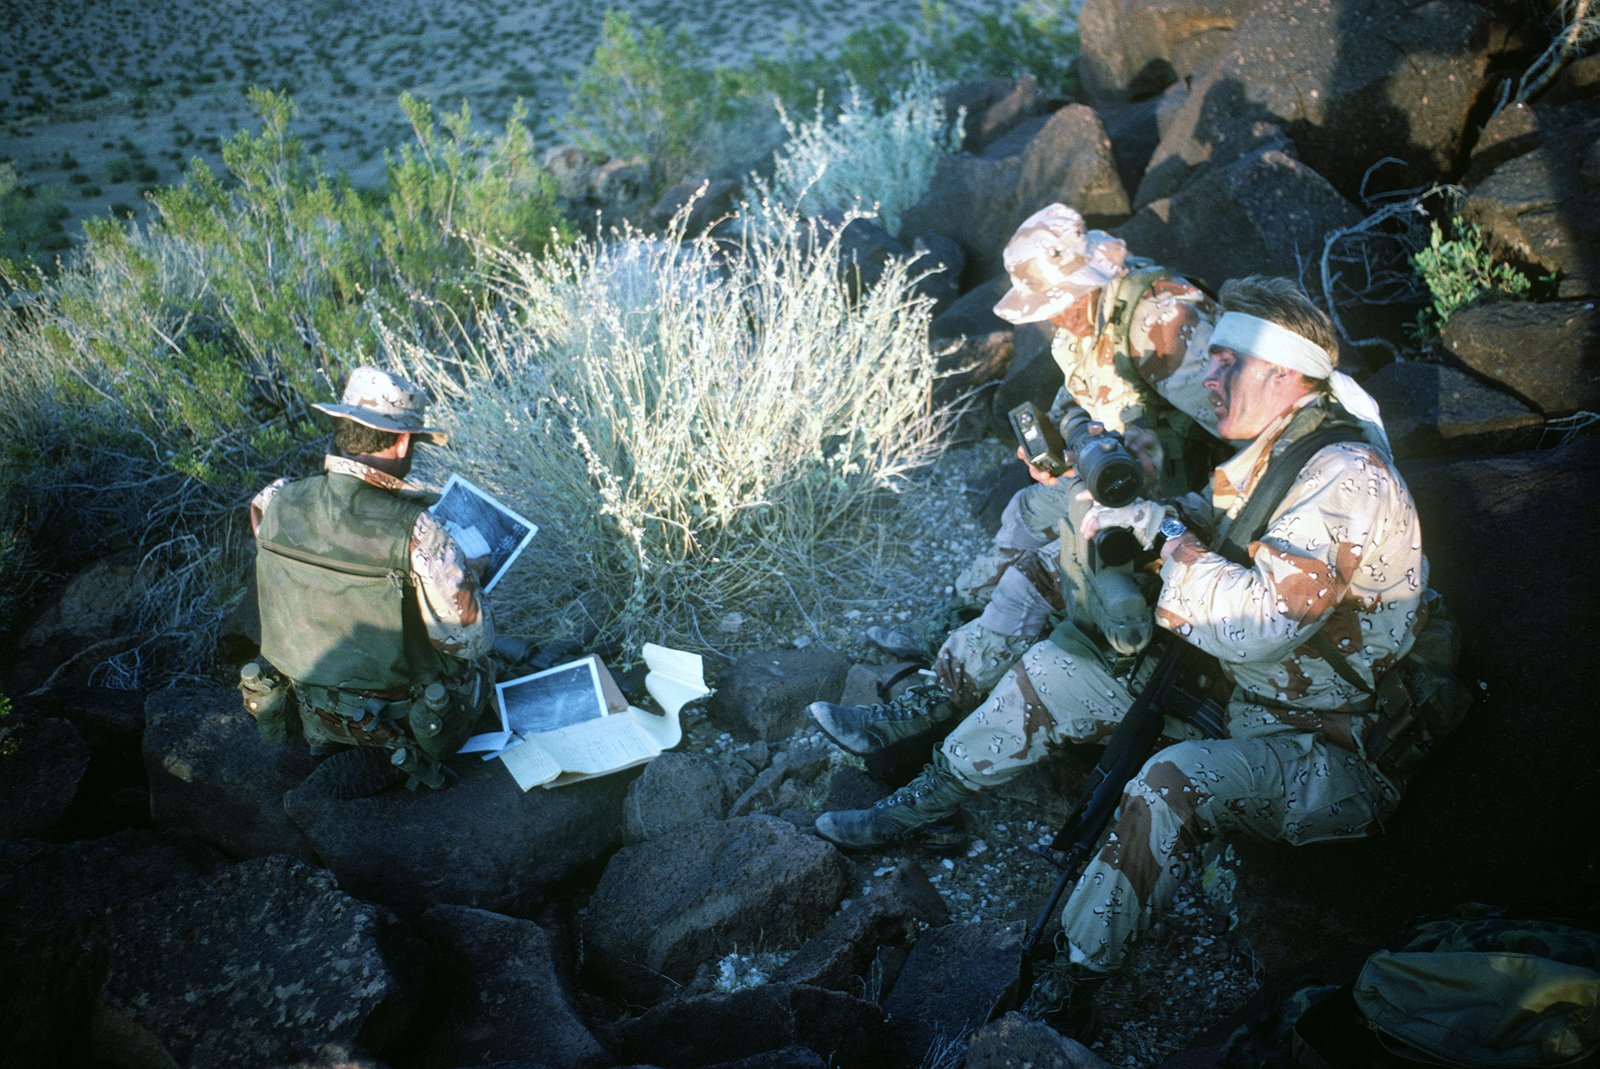 Navy sea-air-land (SEAL) team members, wearing desert camouflage gear, prepare to use an AN/PAQ-1 laser target designator to assist A-7 Corsair II aircraft pilots as they drop laser guided bombs. The laser projector will help to distinguish the various targets for an accurate hit/kill ratio. The SEAL team members are participants of Exercise QUICK FORCE 84-3. The team member in the foreground holds an M16A1 rifle